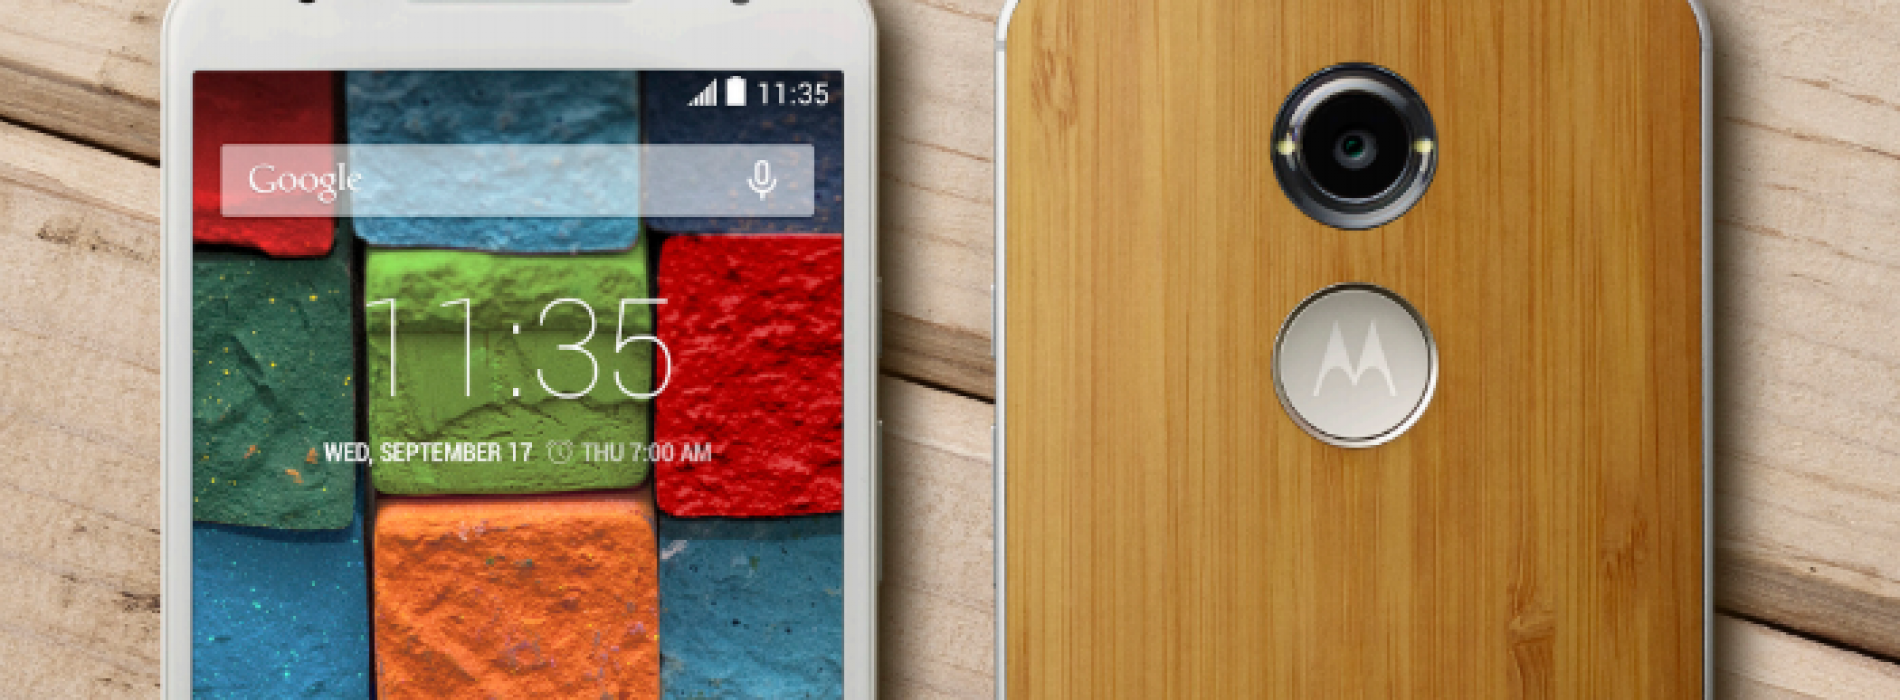 Motorola announces Moto X, Moto G, and Moto 360 pricing and availability